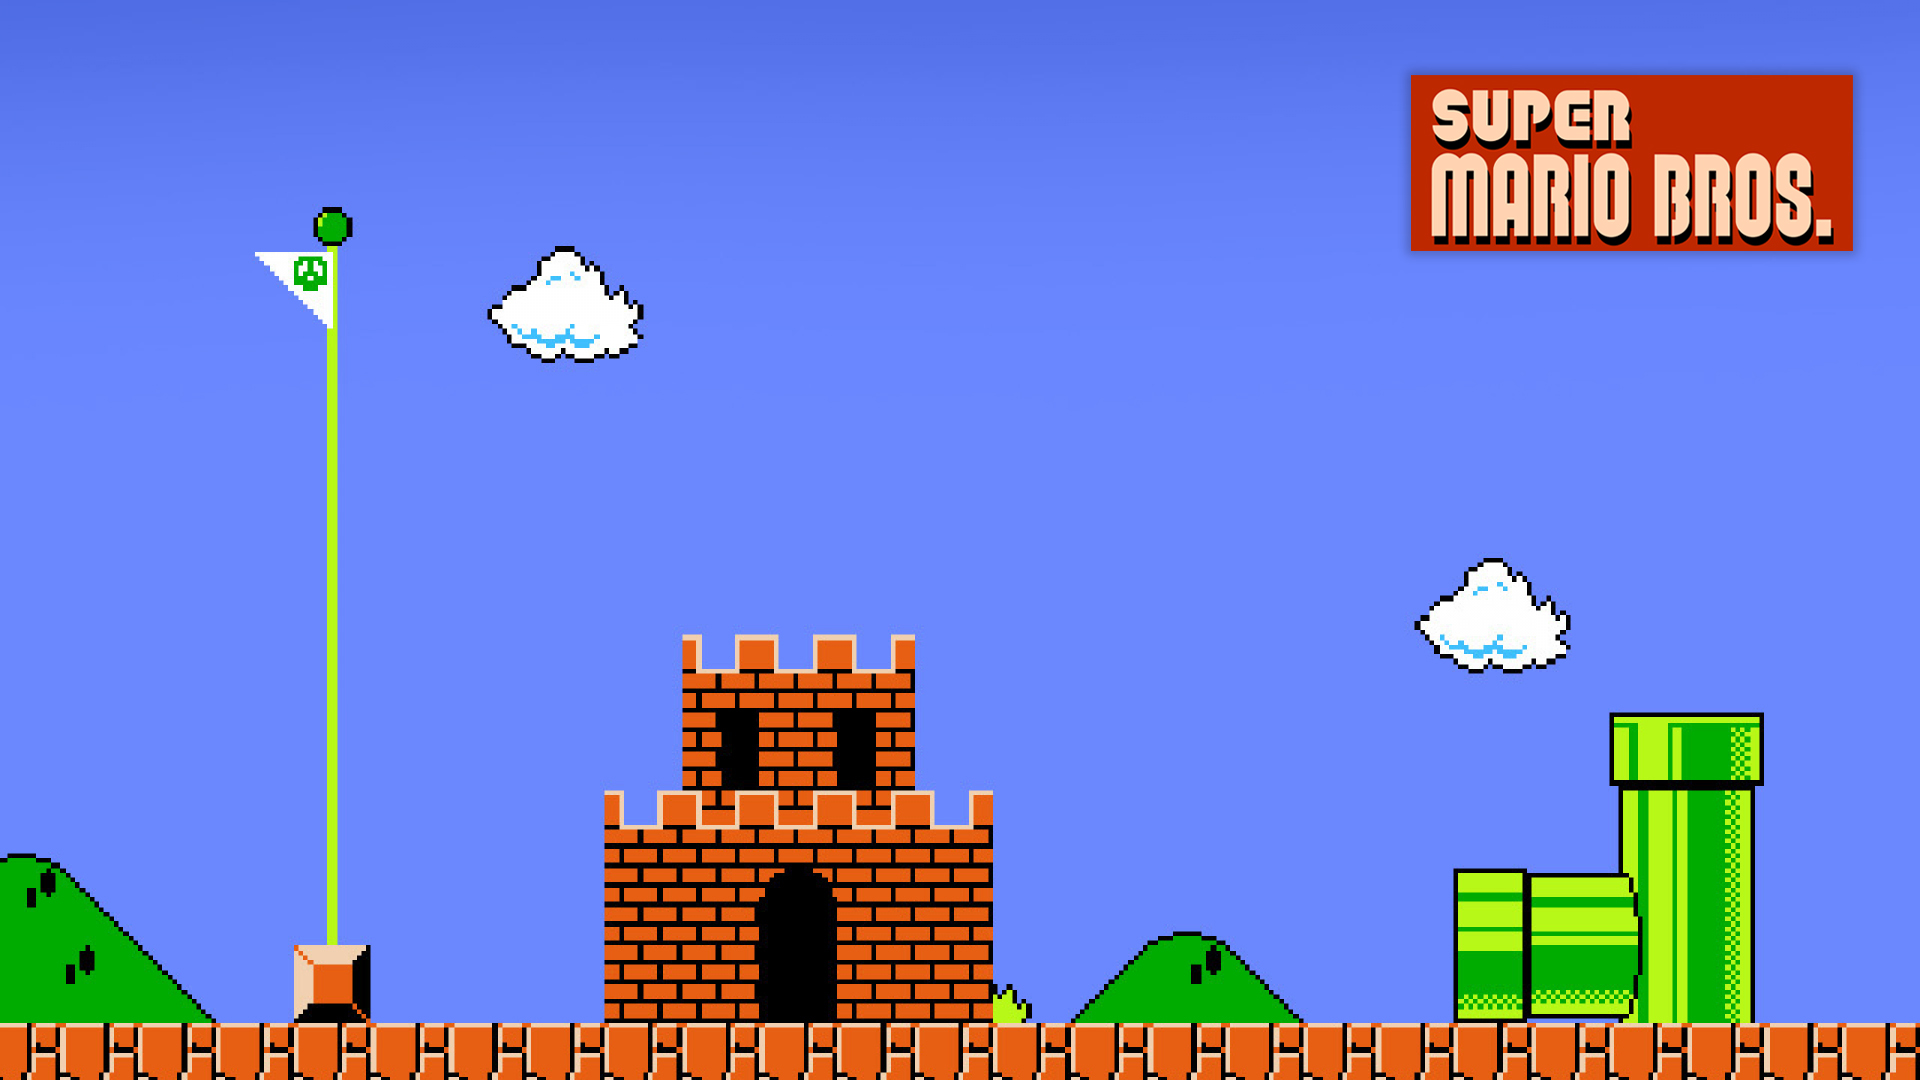 Super Mario Bros level ending. Virtual background to use on Zoom, Microsoft Teams, Skype, Google Meet, WebEx or any other compatible app.